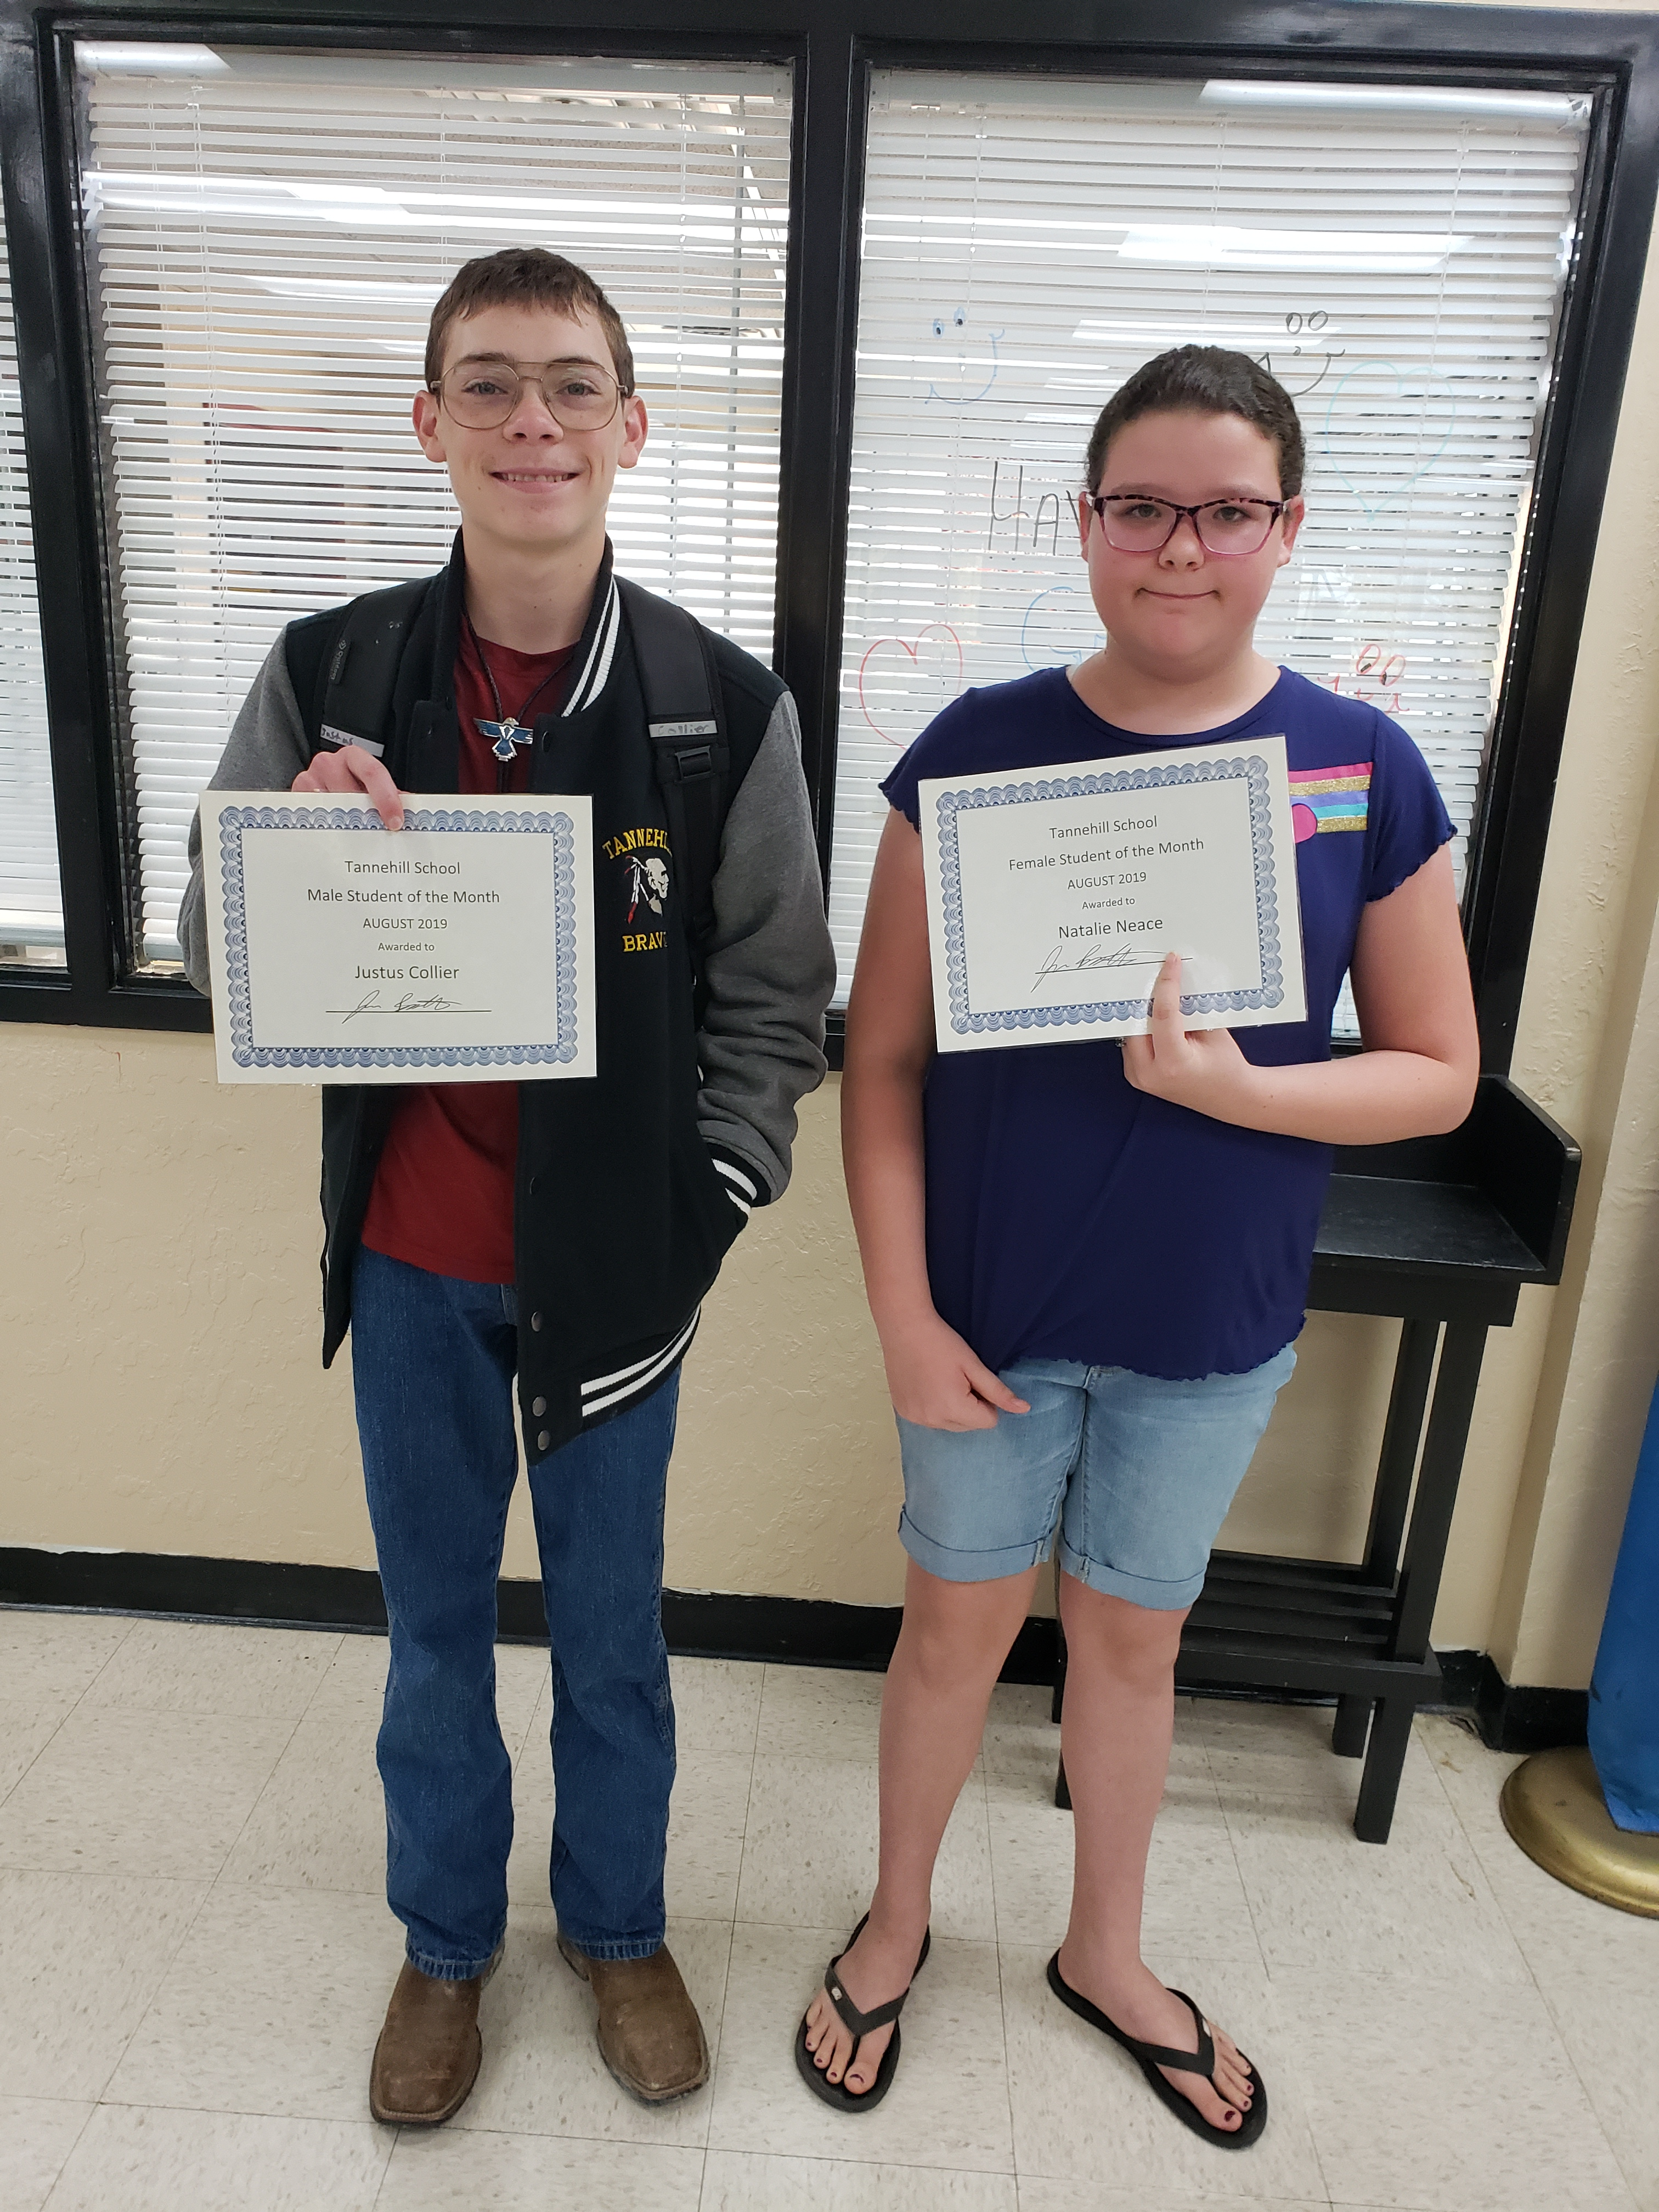 August Students of the Month: Justus Collier & Natalie Neace!